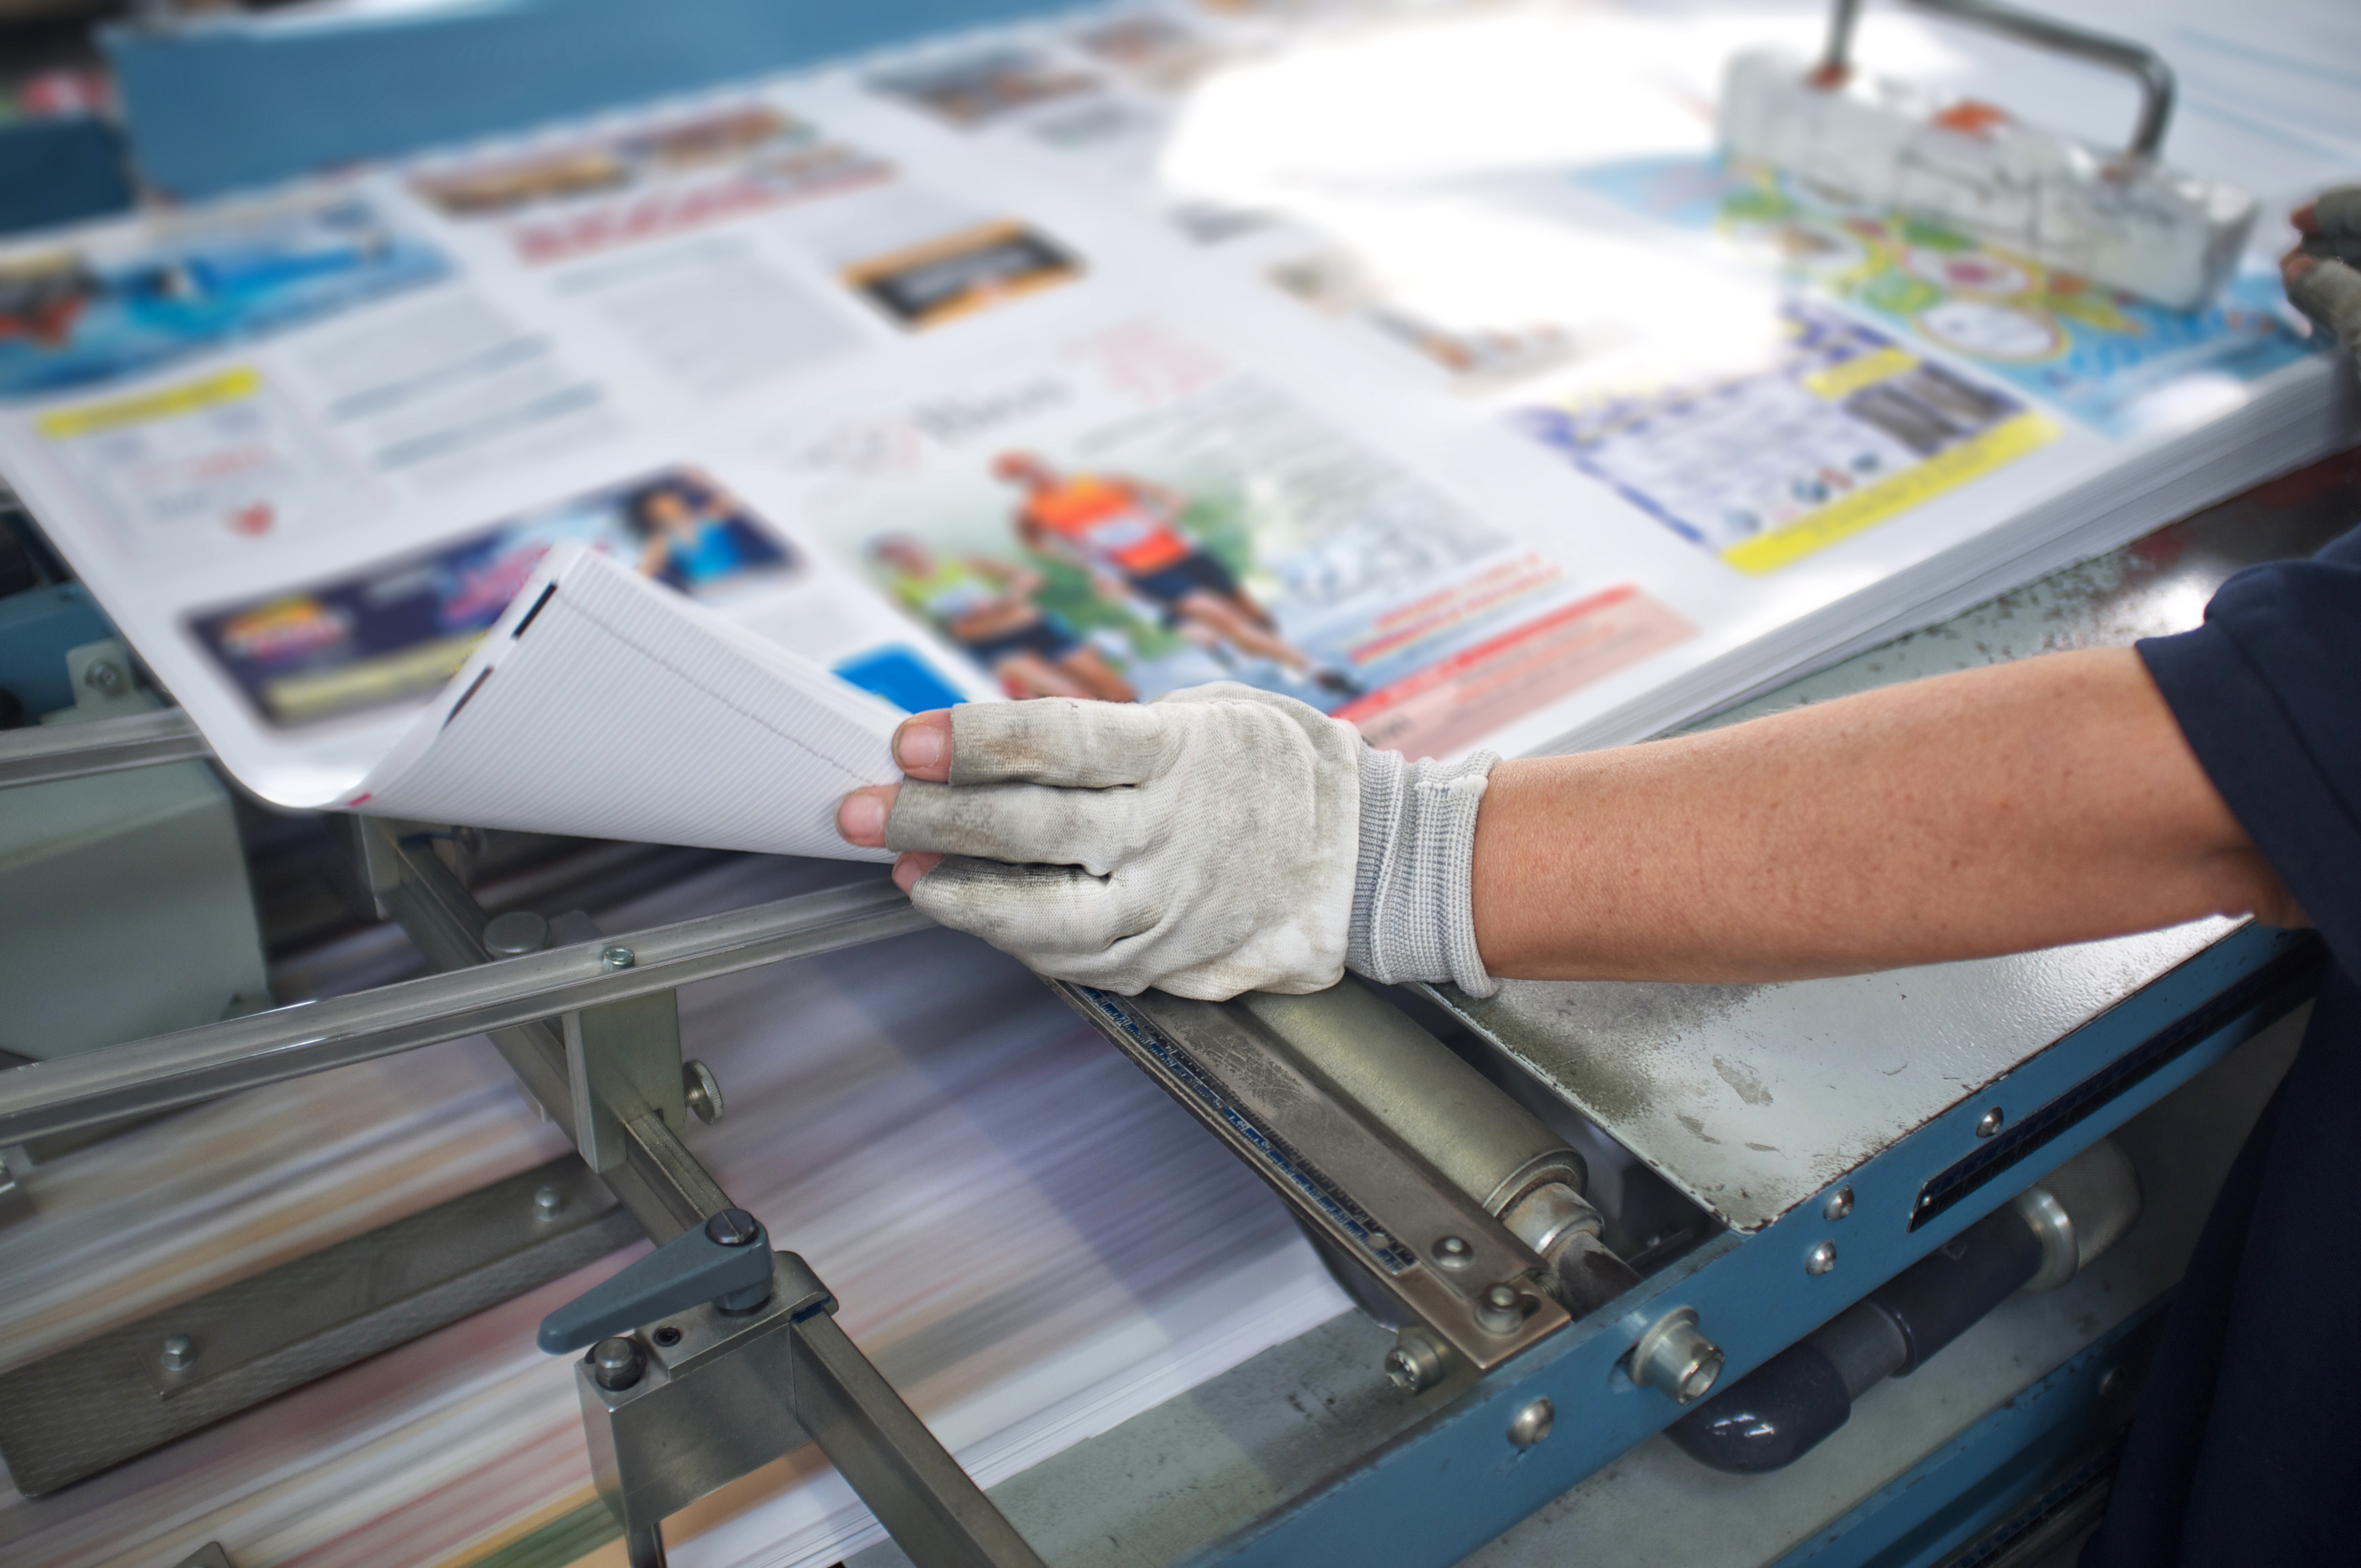 Printing Services in the Digital World: Here's How to Stand Out